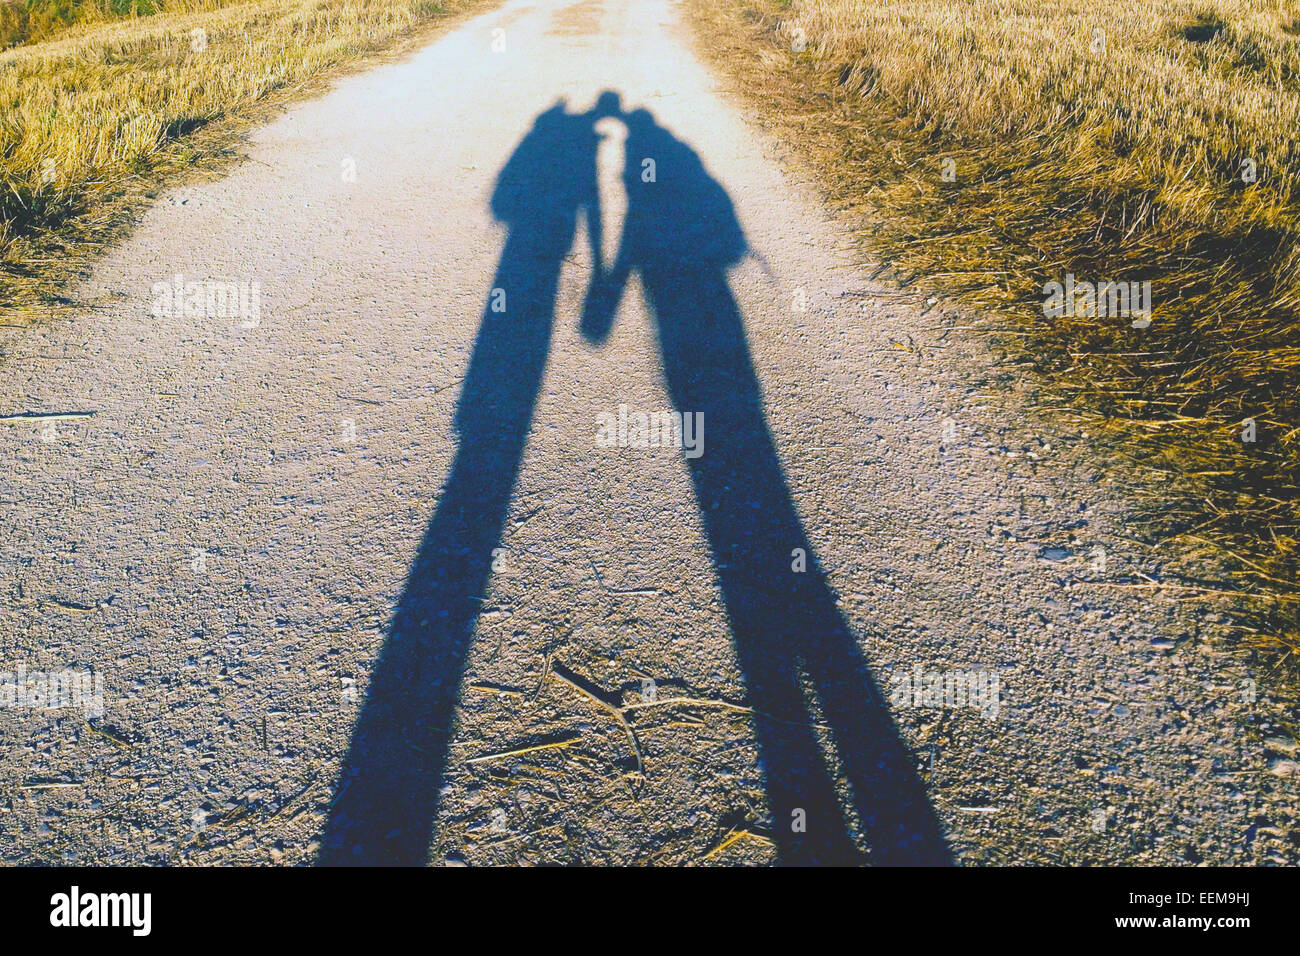 France, Camino de Santiago, Shadow of hiker couple on country road - Stock Image